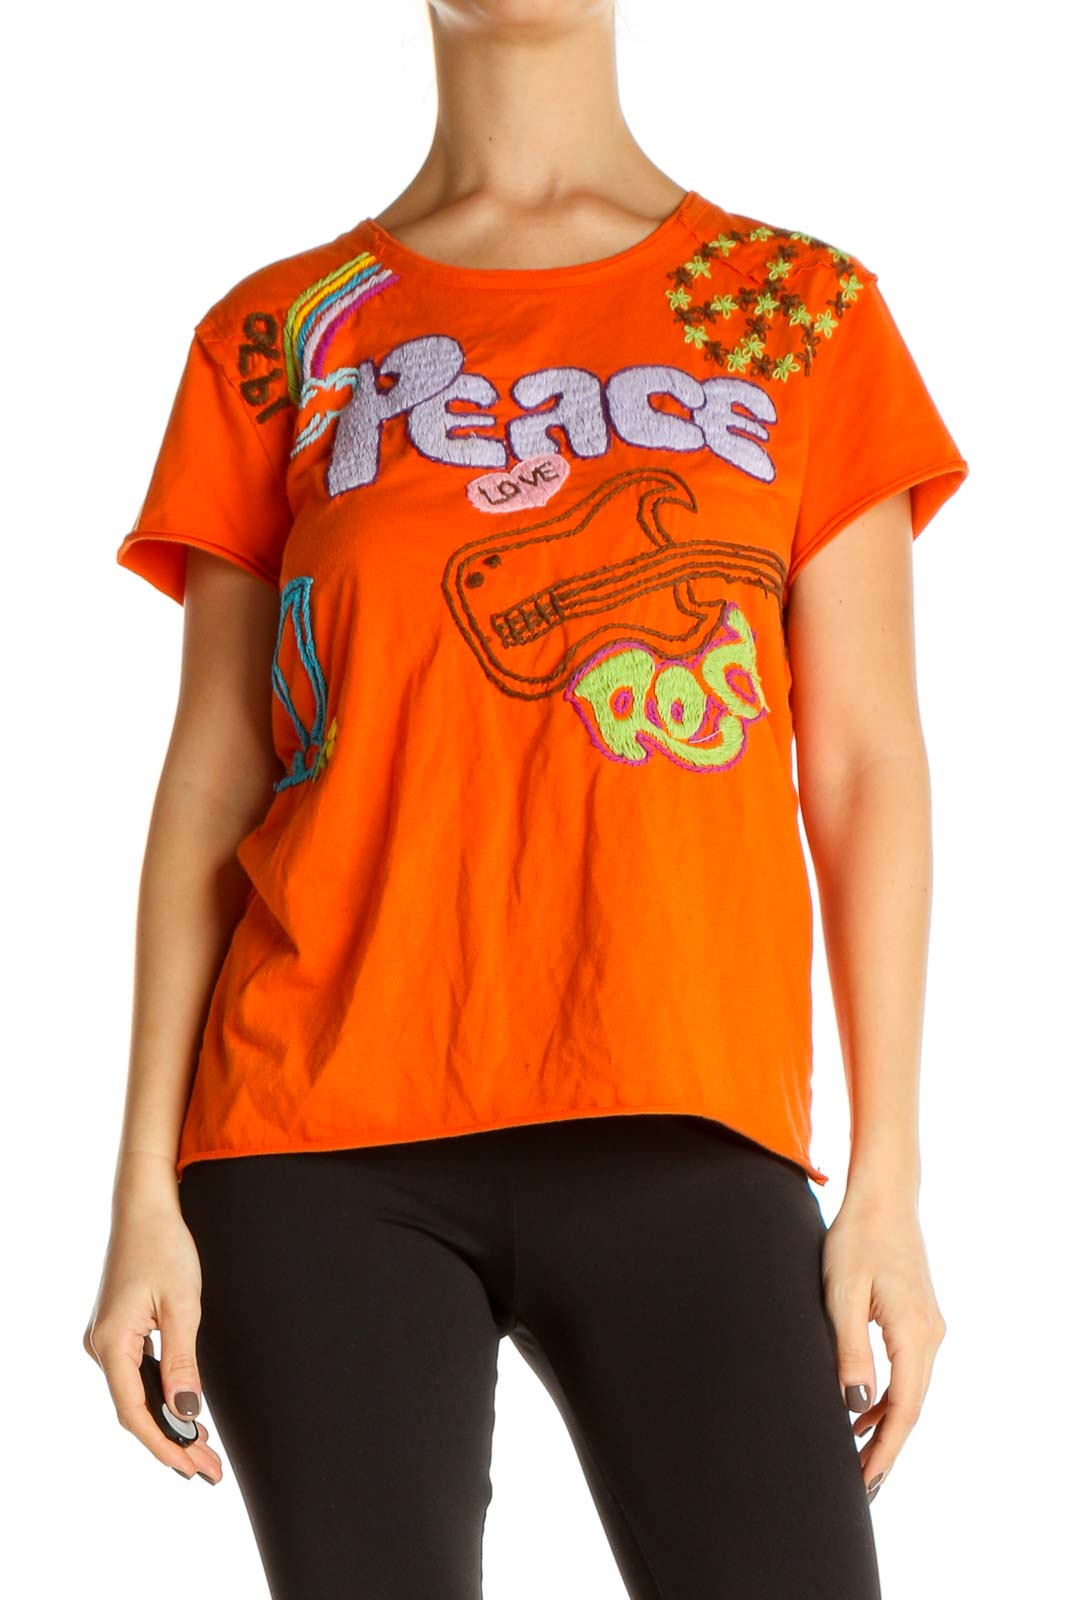 Orange Graphic Print All Day Wear T-Shirt Front